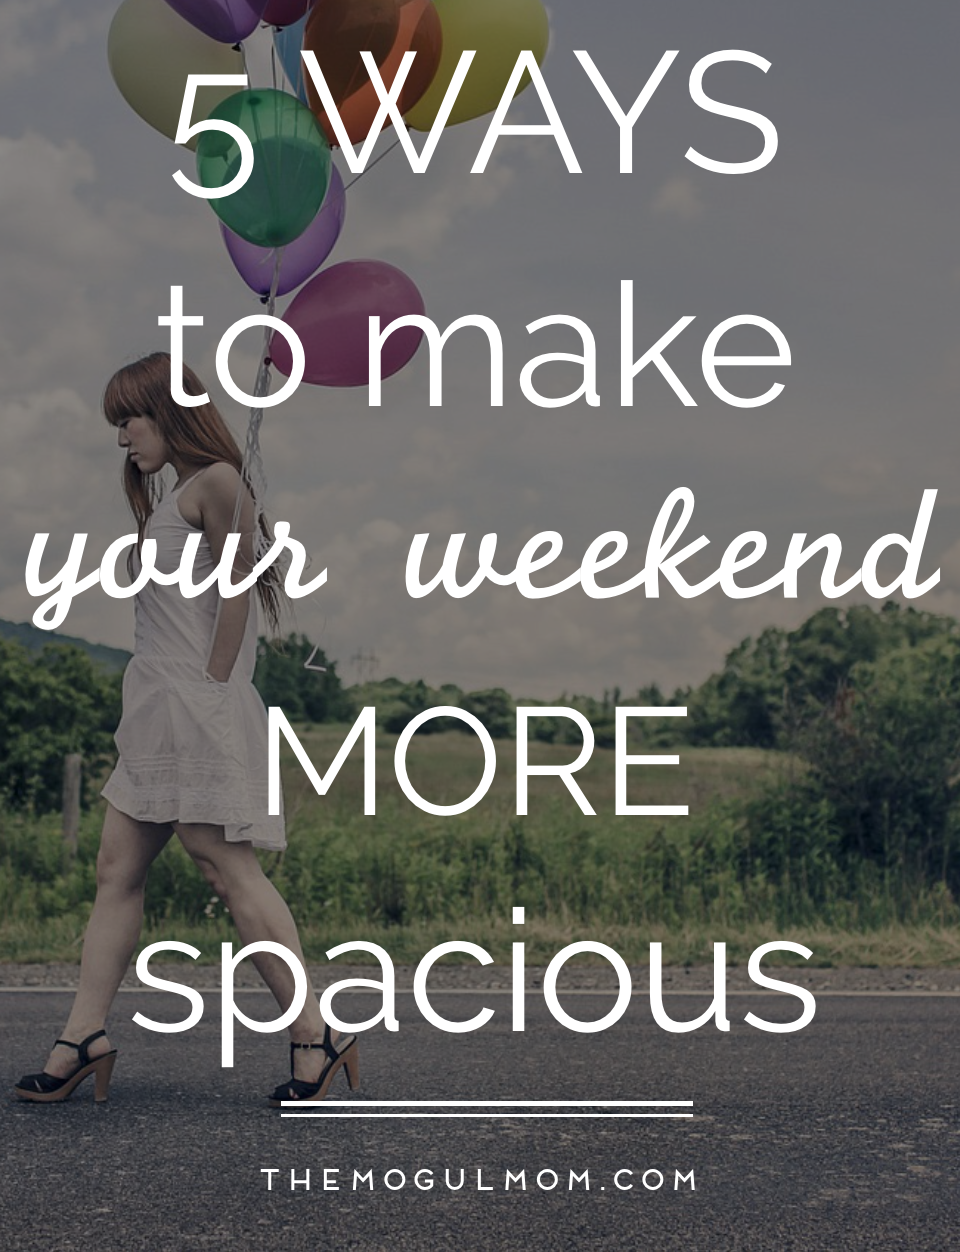 5 Ways To Make Your Weekend More Spacious